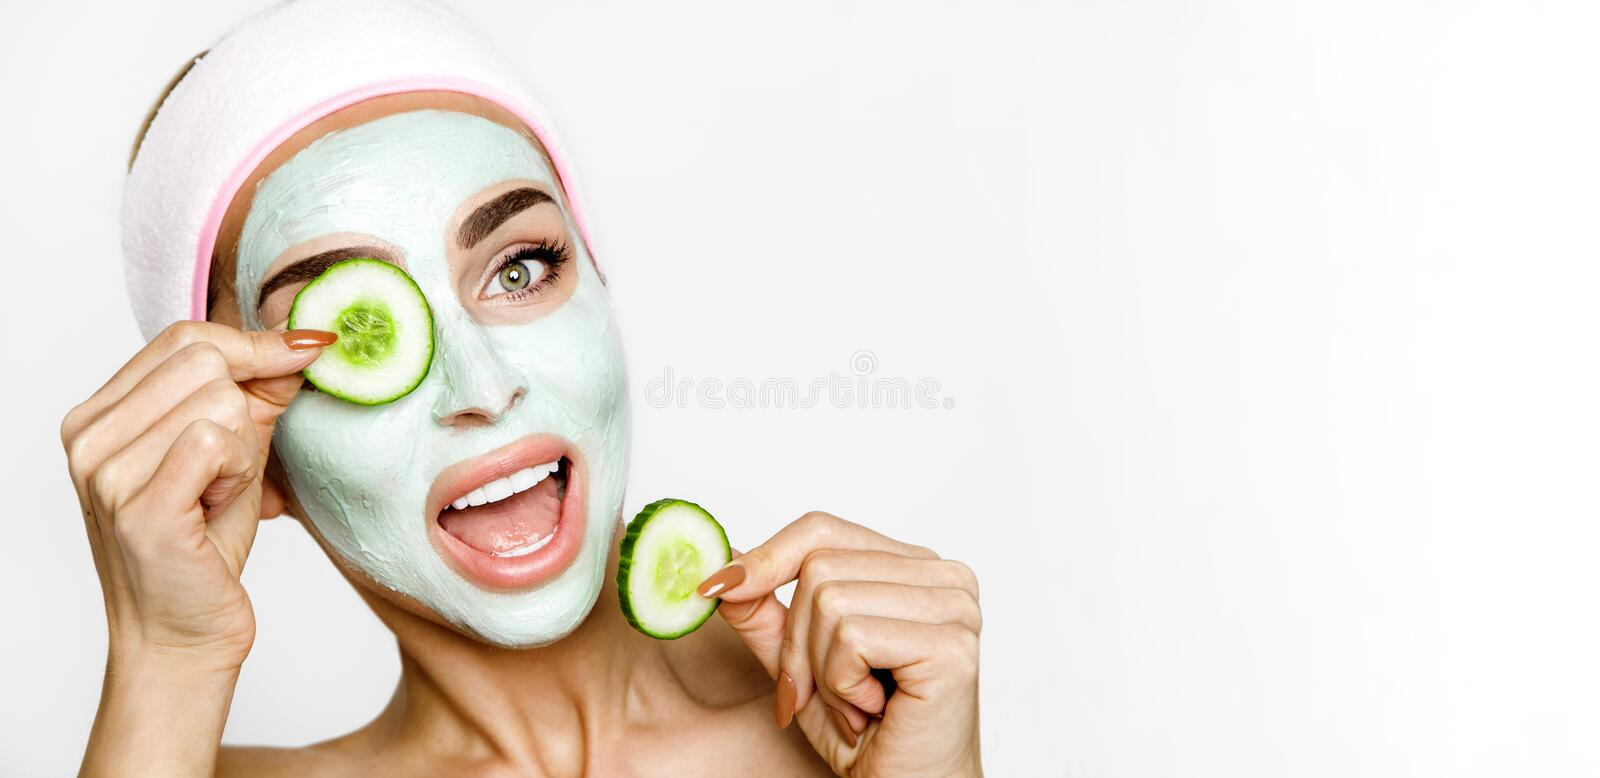 Young smiling woman with a clay mask. Photo of attractive young woman covering her eyes with cucumbers on a white background. royalty free stock photography